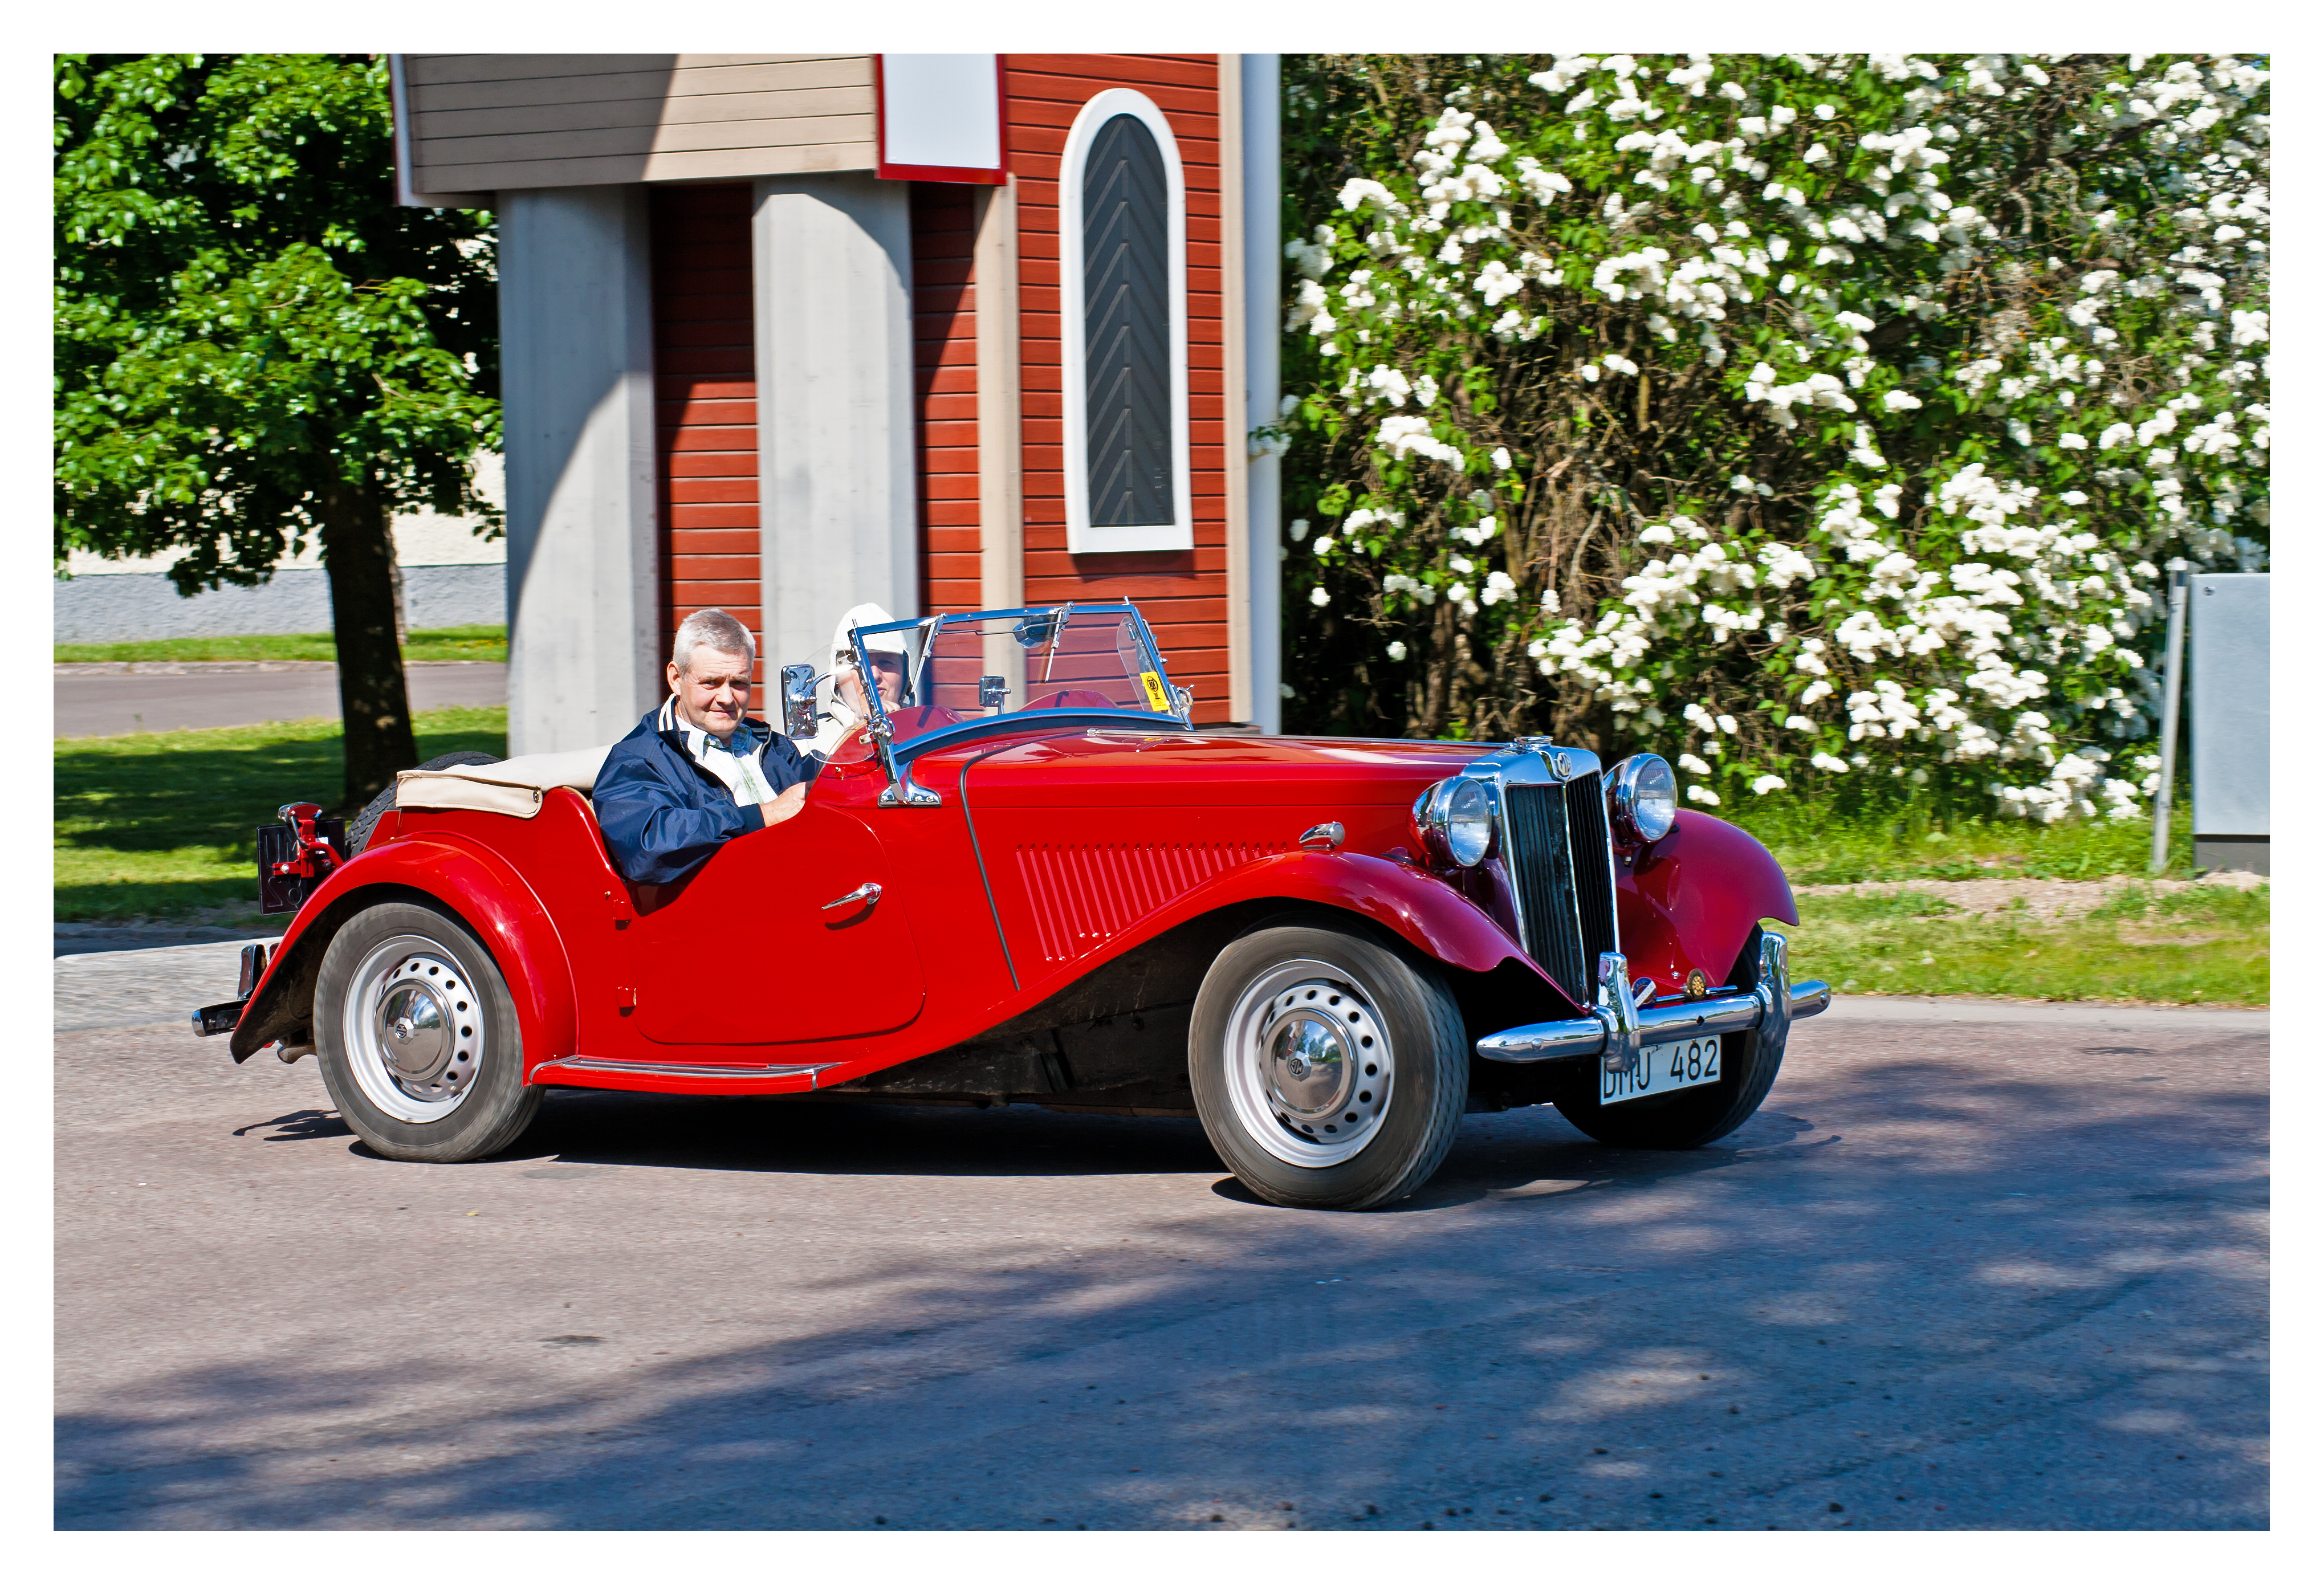 MG TD 1952, 1952, Car, MG, HQ Photo